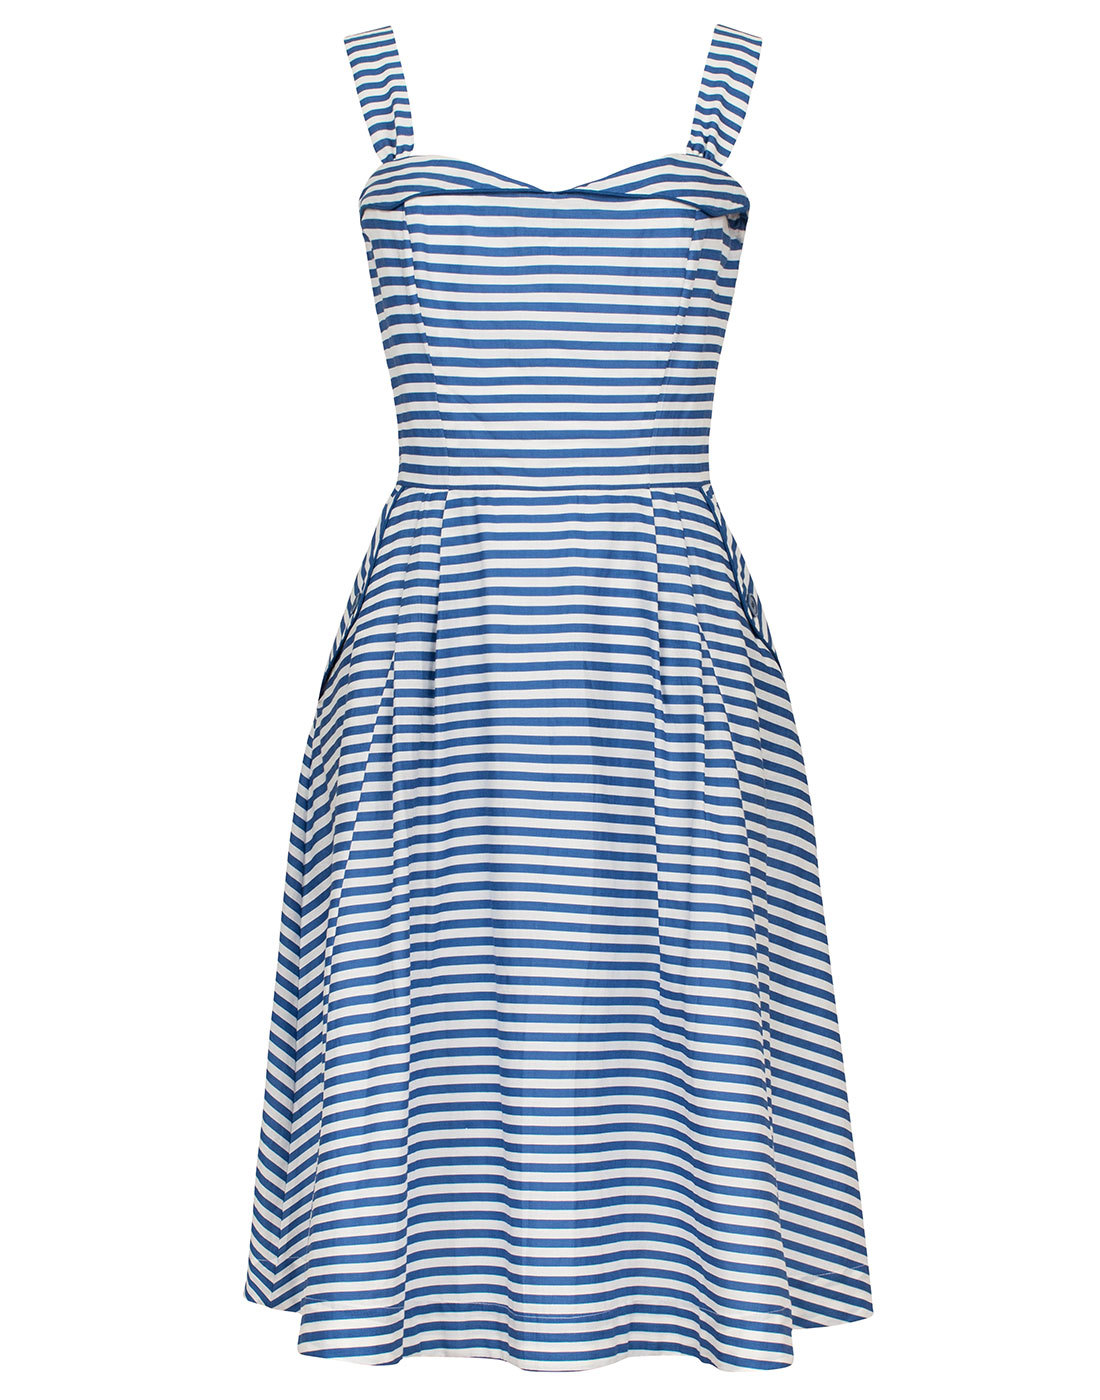 emily and fin pippa retro vintage 50s summer dress blue